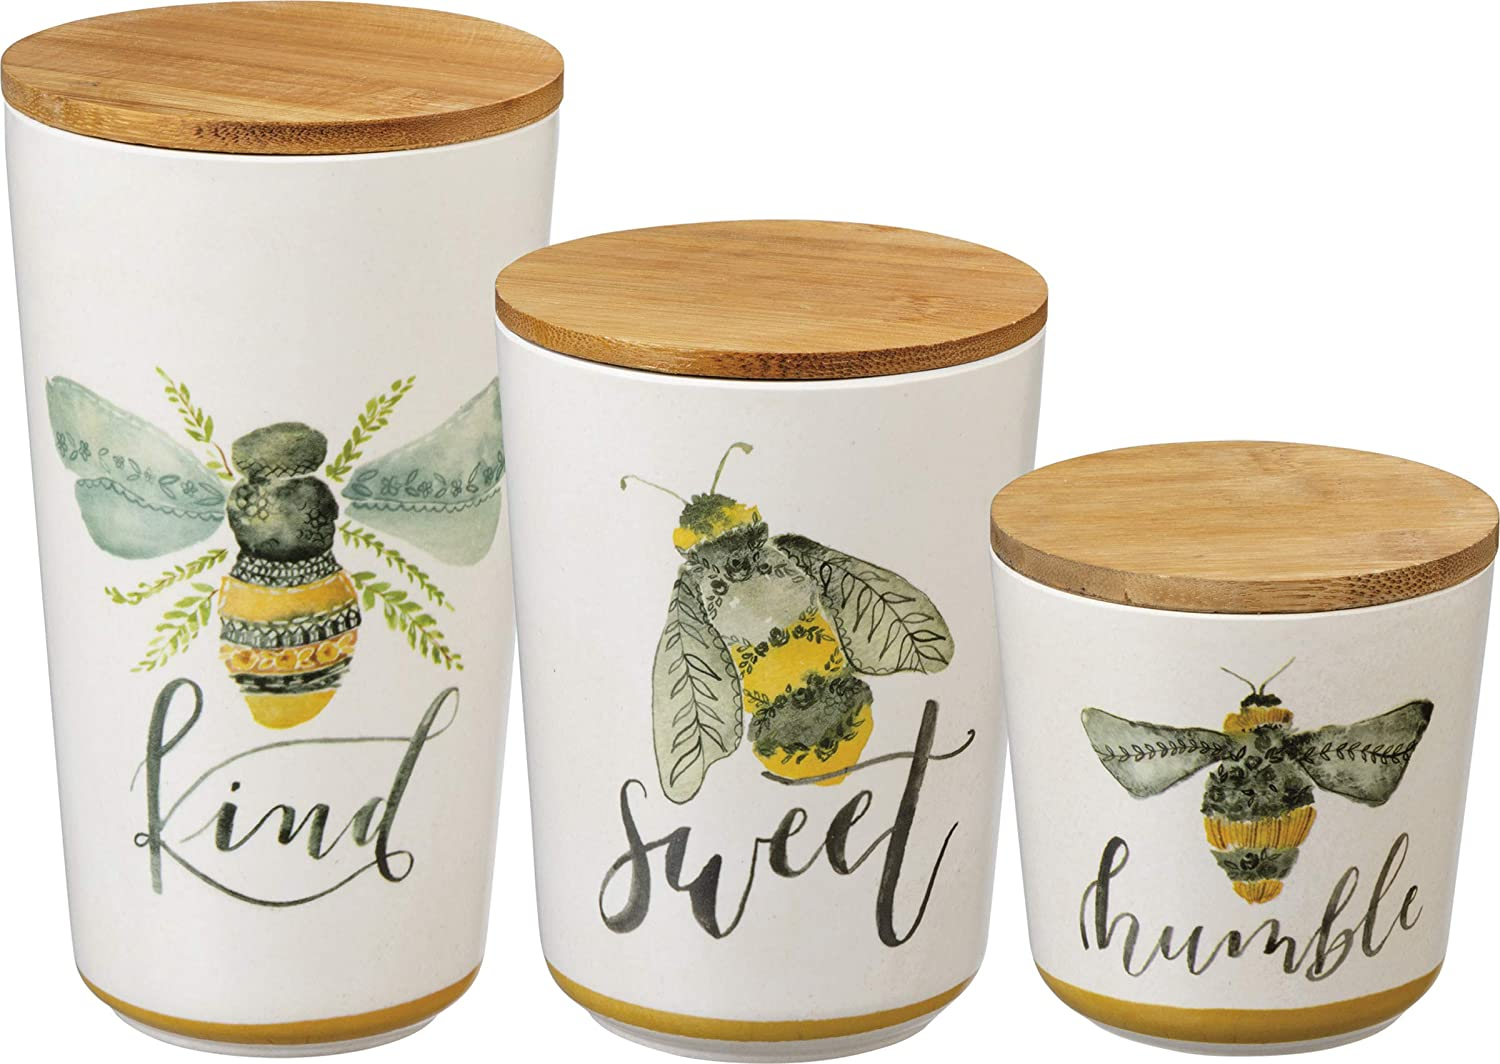 Primitives by Kathy Kitchen Canisters, Set of 3, Bees - Kind, Sweet, Humble